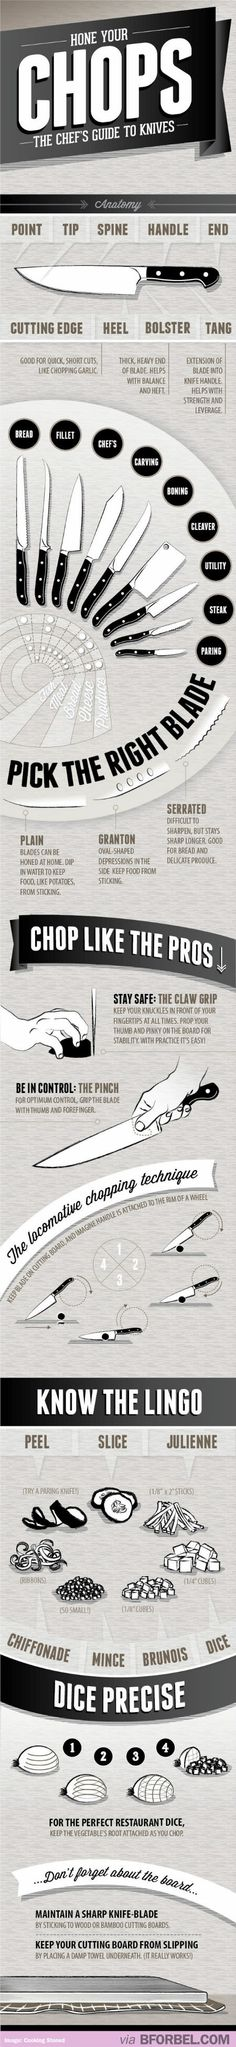 Infographic: Guide to Kitchen Knives!